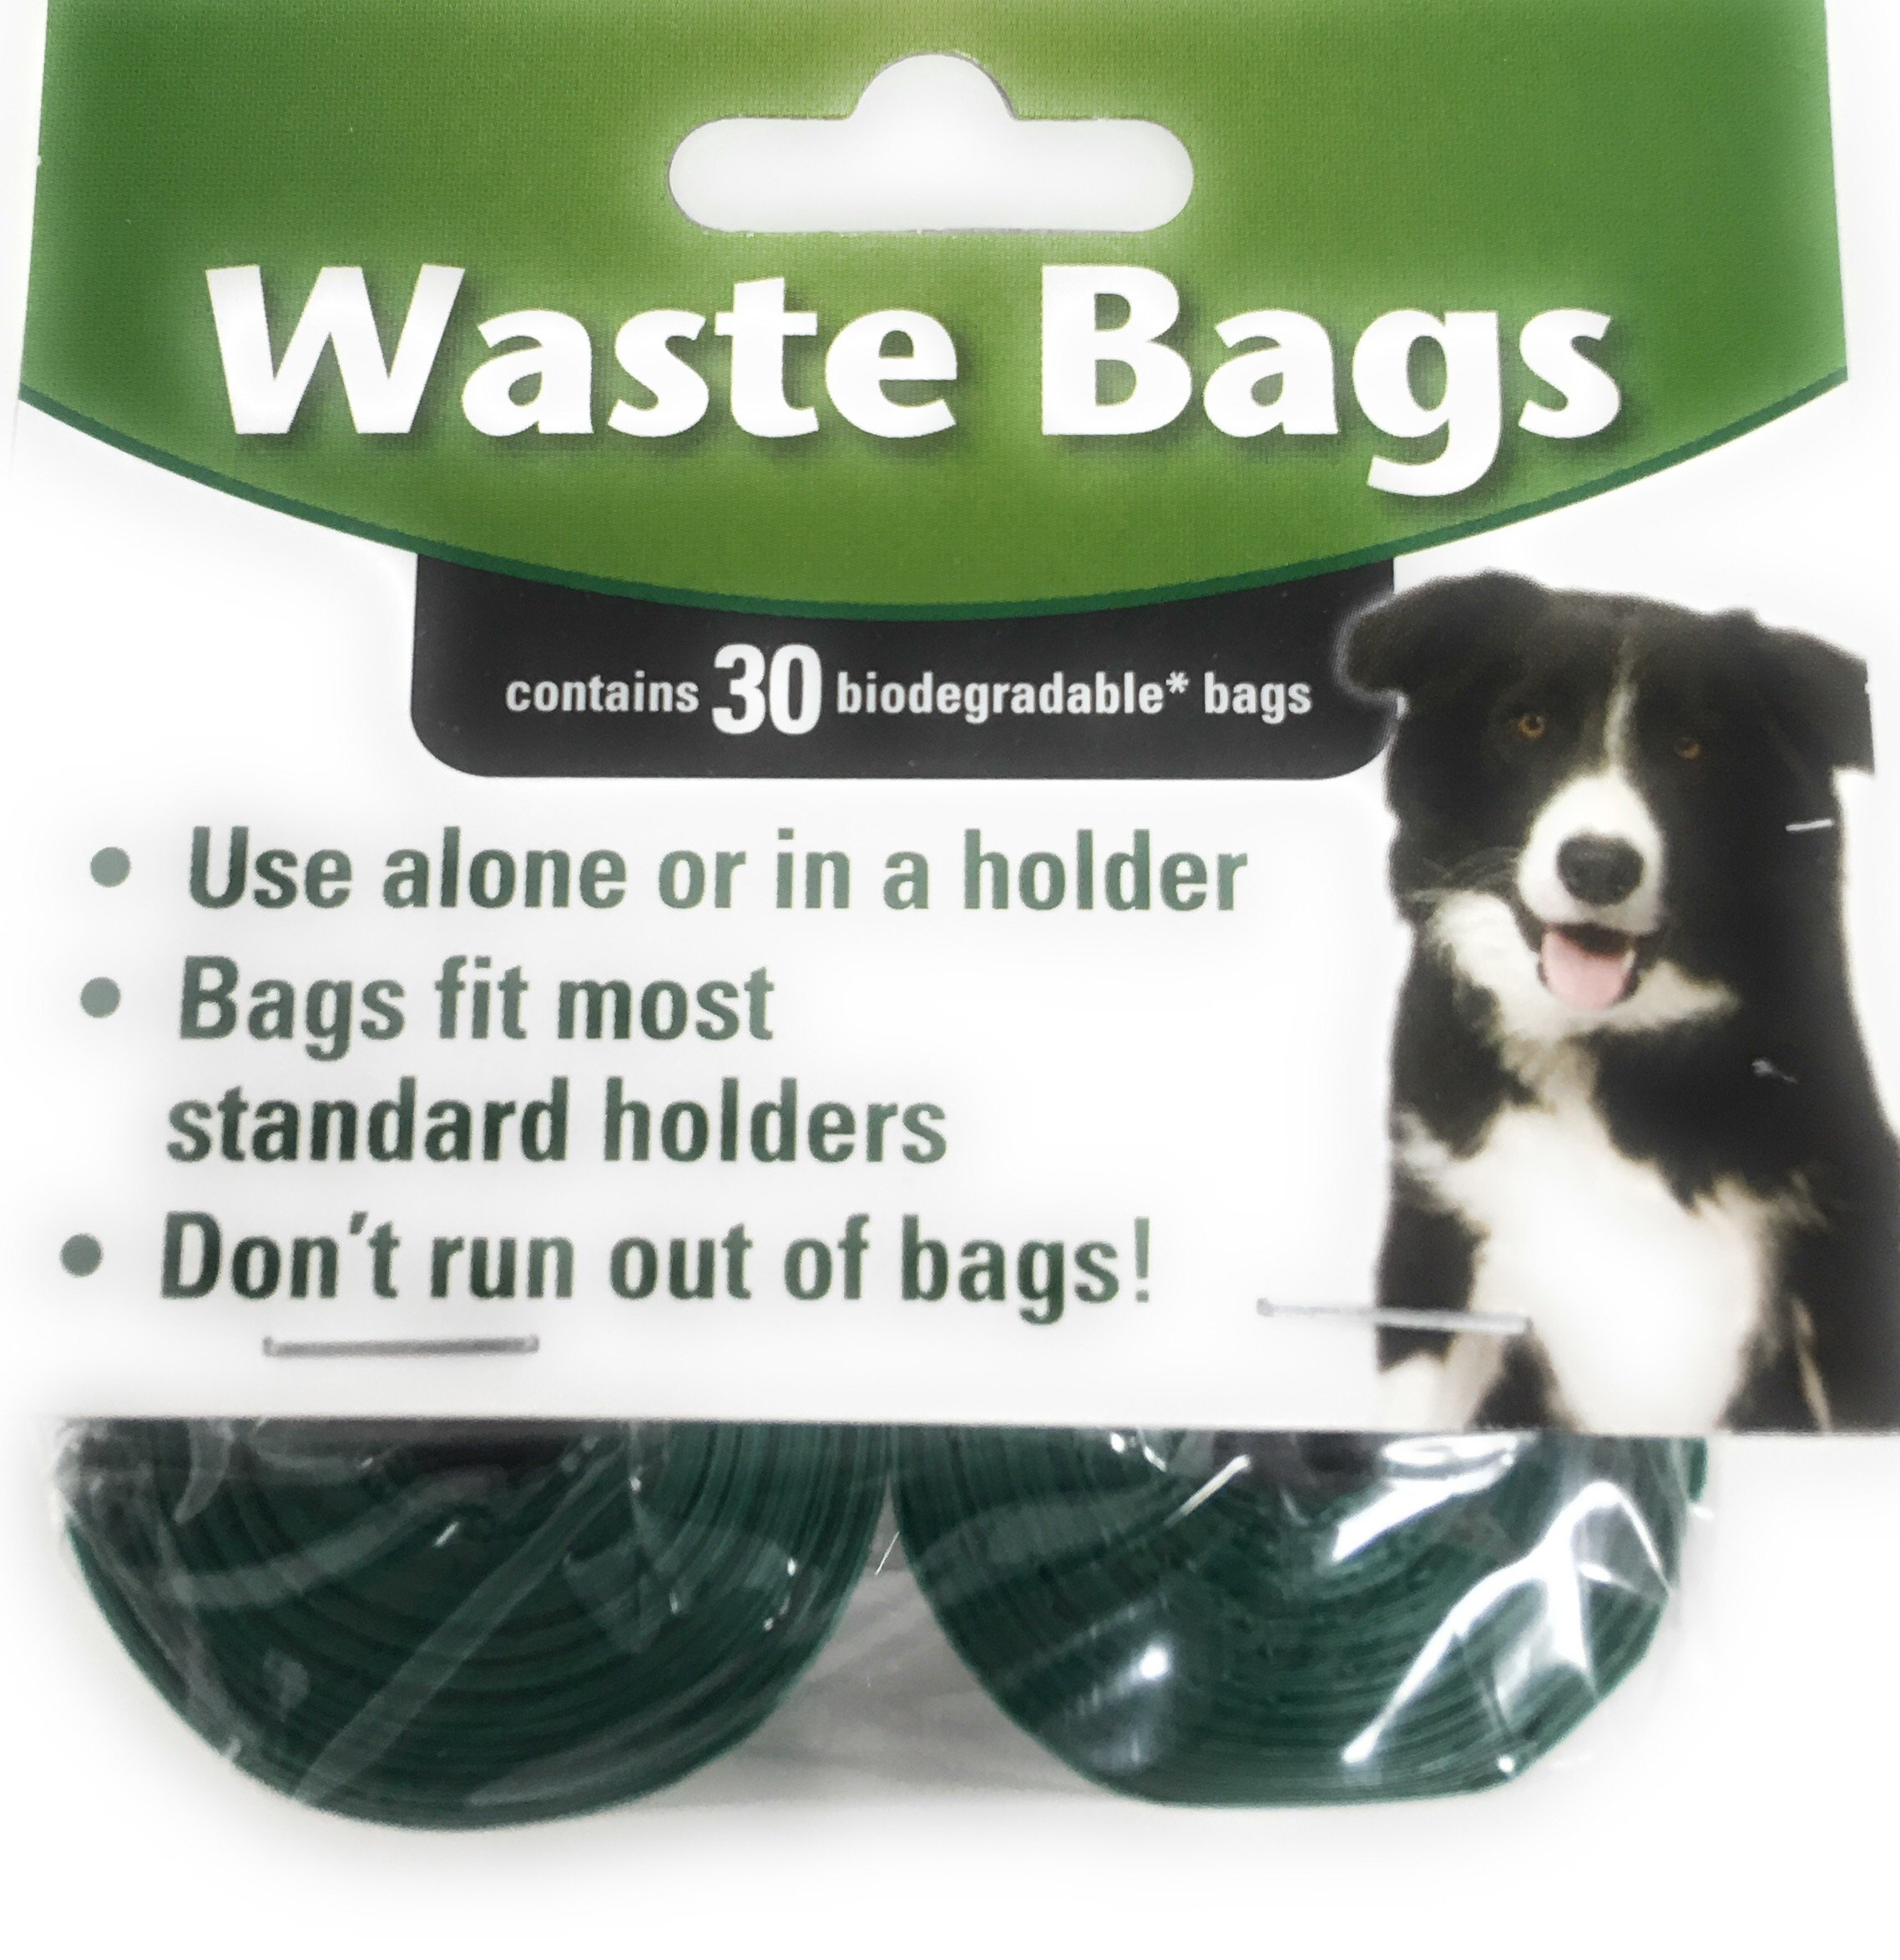 Exclusive Gifts Toys & More Biodegradable Waste Bag Refill Roll Set- Environmentally Friendly | Use Alone or in a Holder | Bags Fit Most Standard Holders | 15 Rolls, 150 Bags (Unscented Poop Bags)